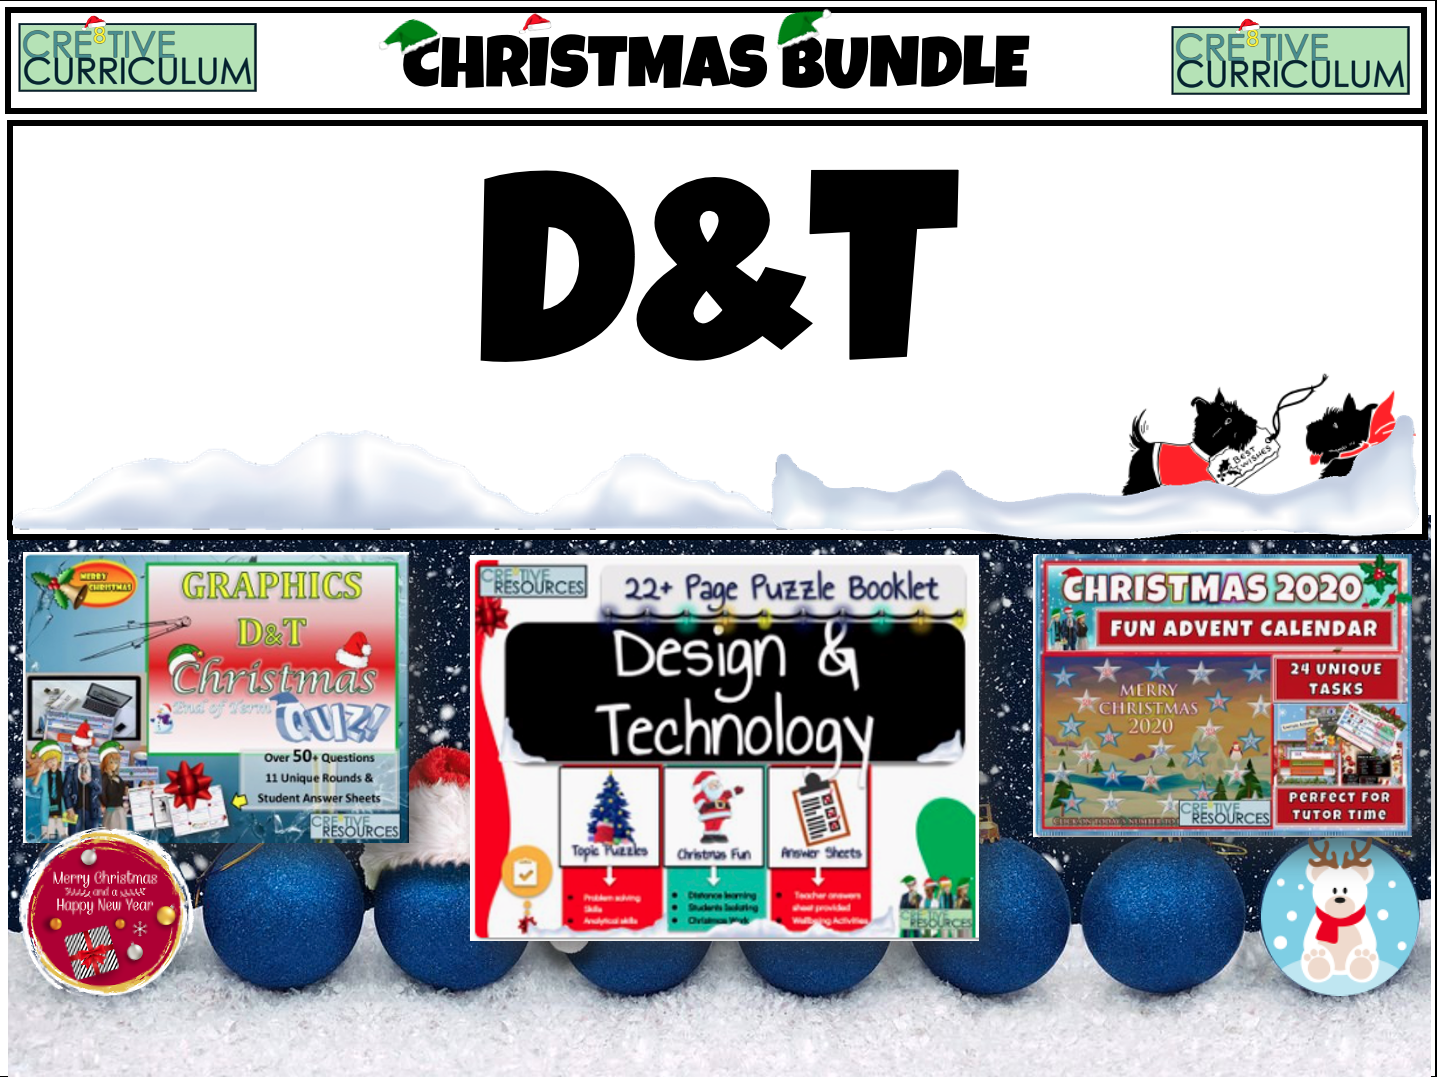 D&T Christmas Resources